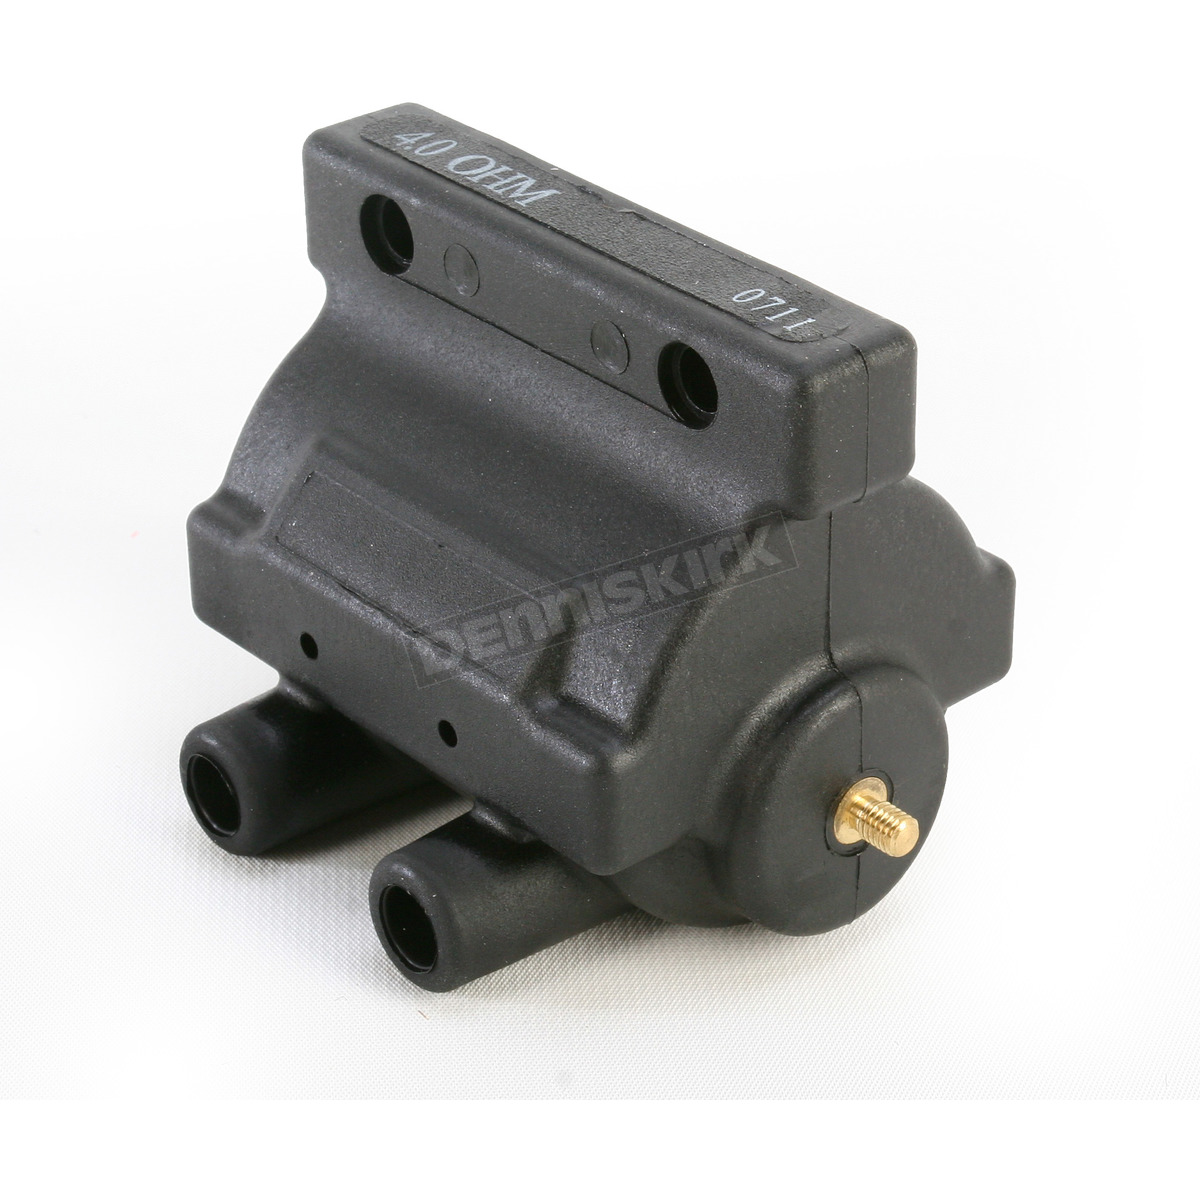 ... Black Dual-Fire Ignition Coil - 2102-0216 ...